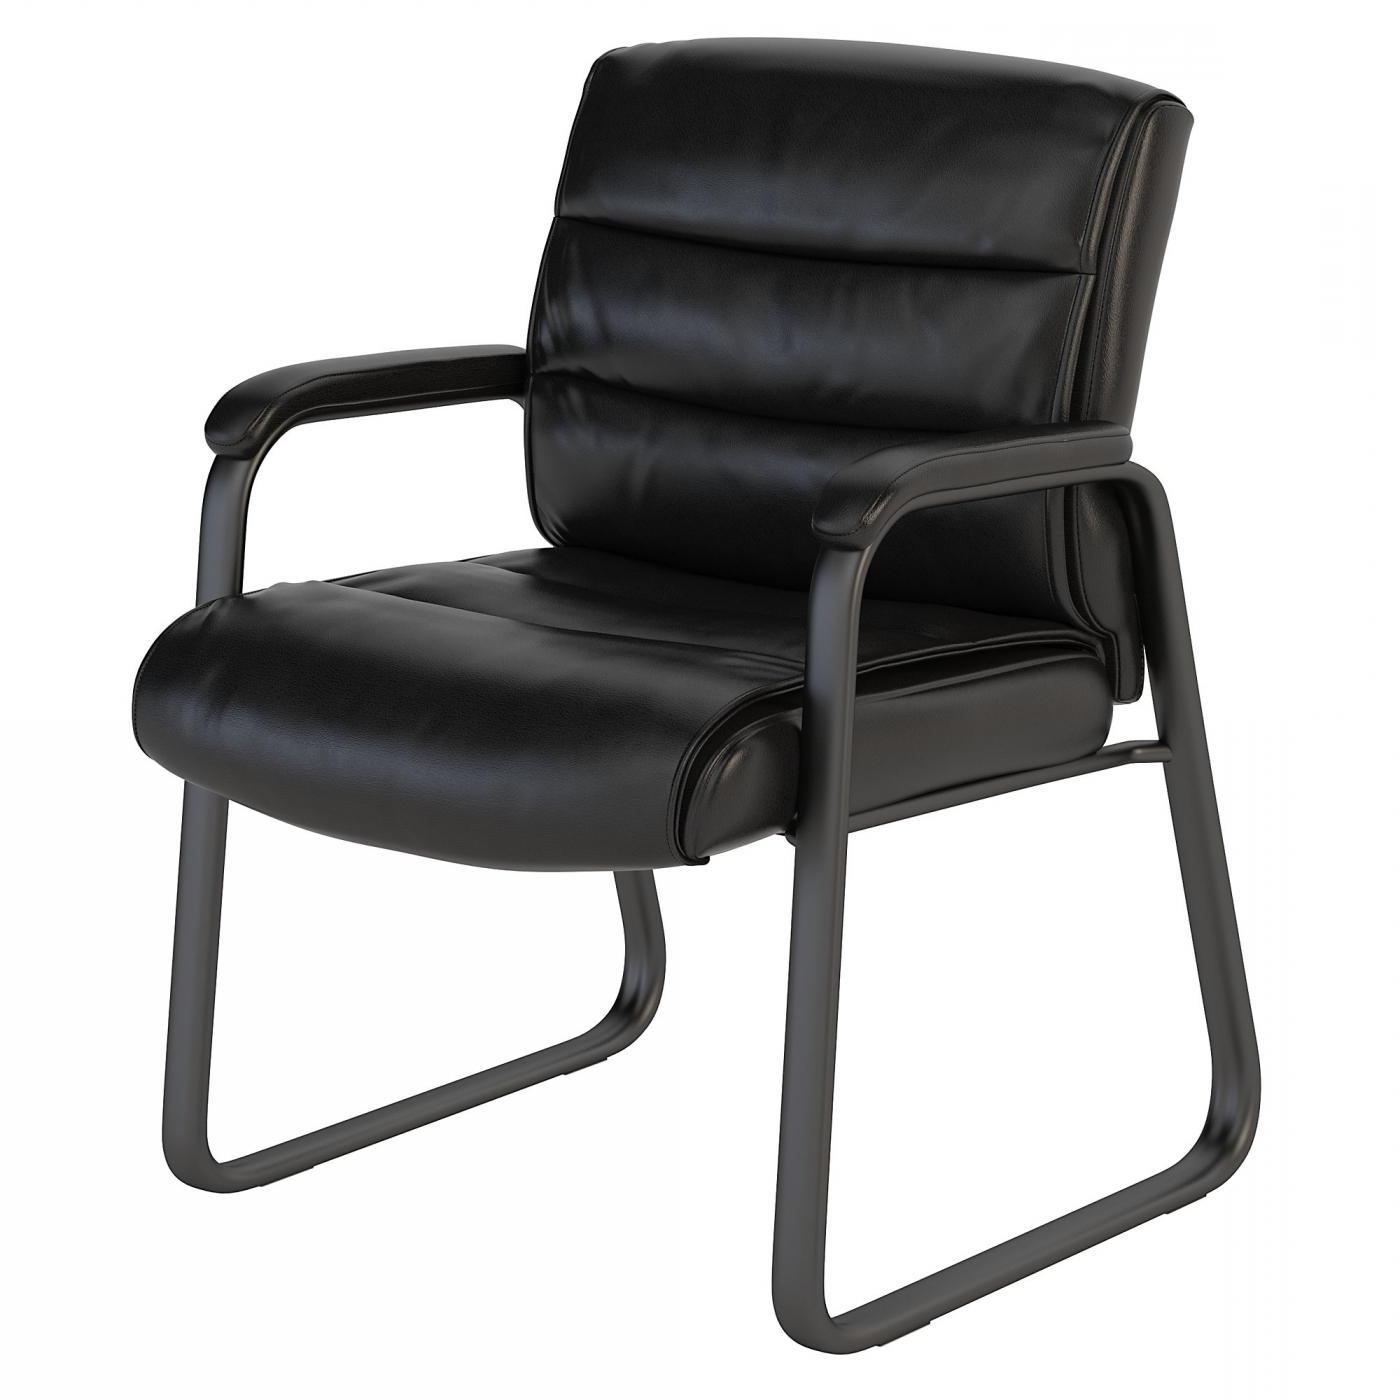 <font color=#c60><b>BUSH BUSINESS FURNITURE SOFT SENSE LEATHER GUEST CHAIR. FREE SHIPPING</font></b> </font></b></font></b>